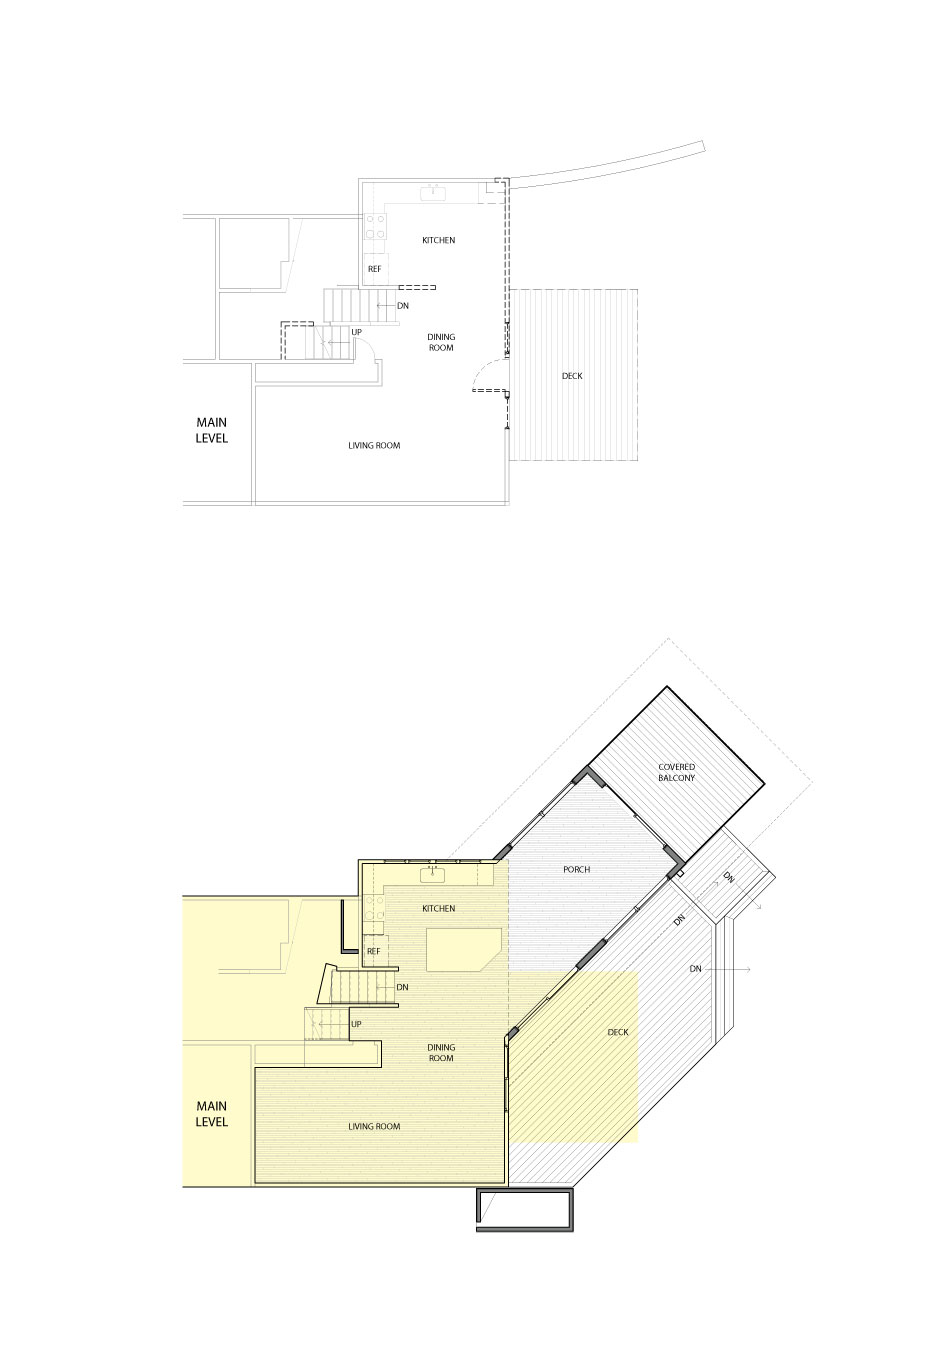 The before and after floor plans of a home remodeled by Close Associates.